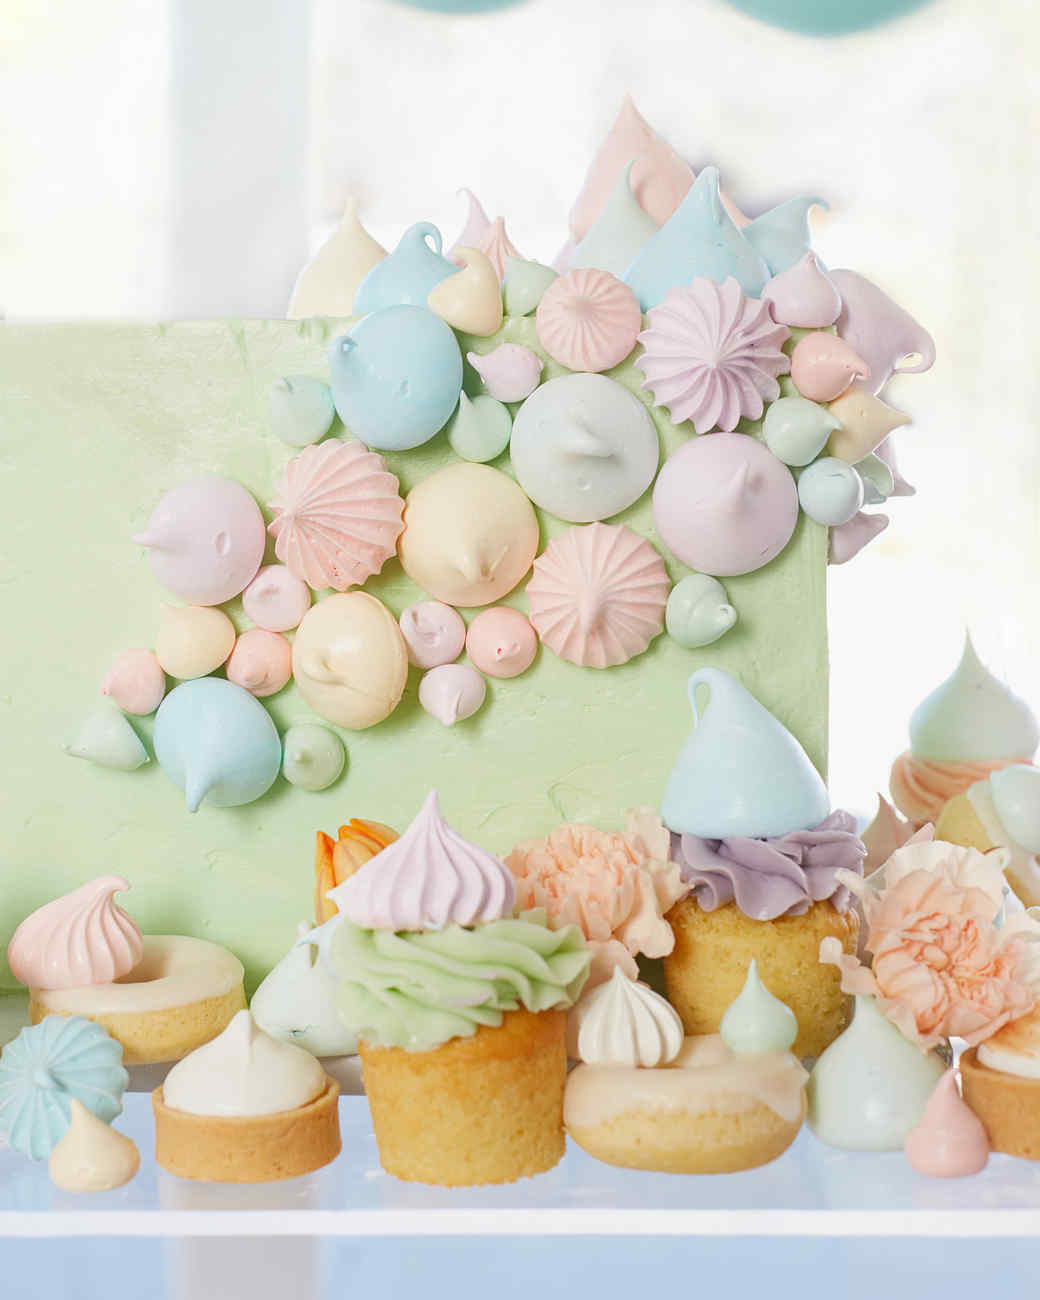 closeup of cupcakes and donut desserts at baby shower